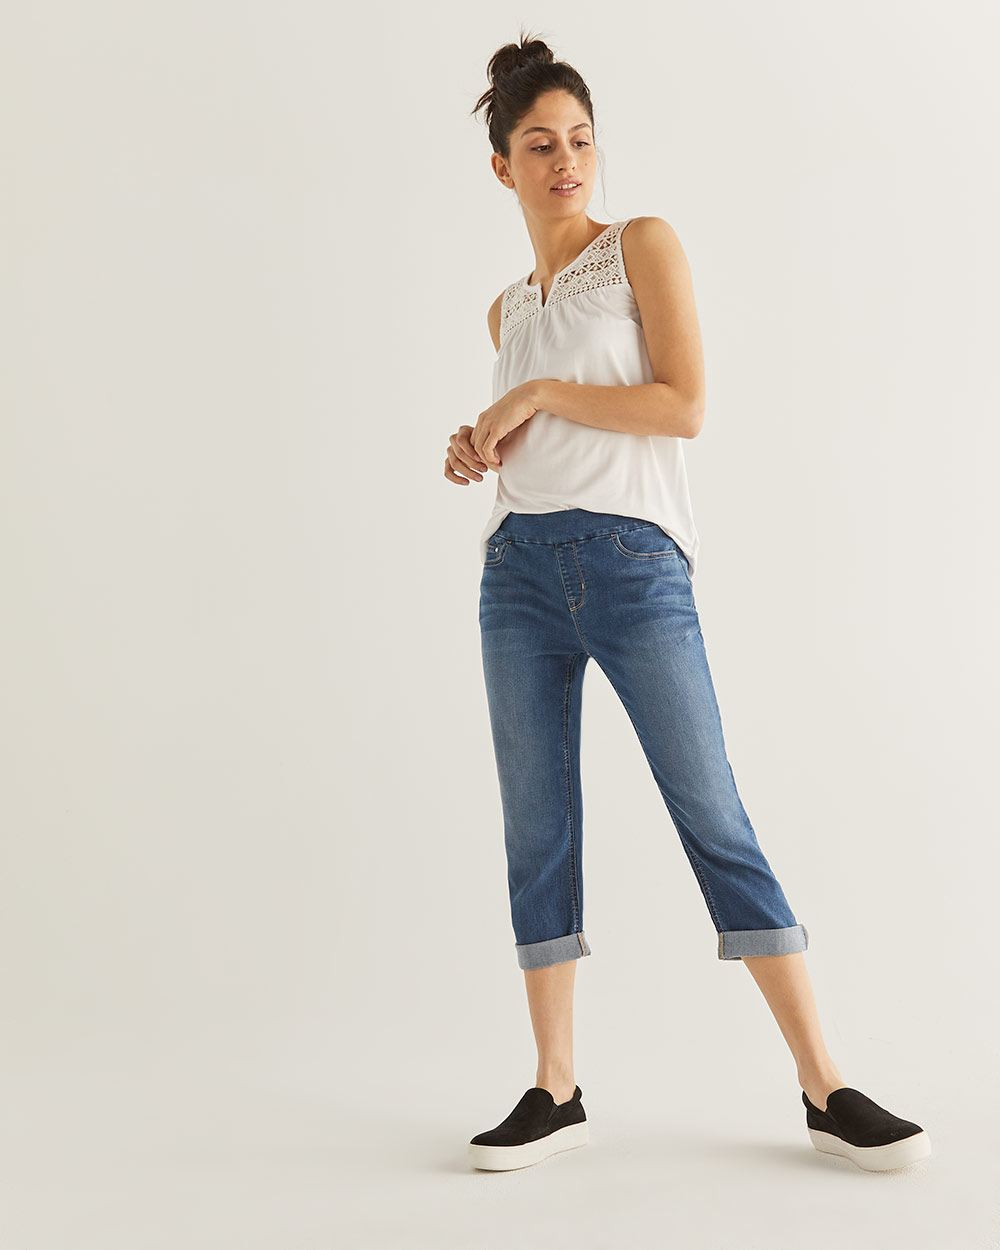 The Original Comfort Capri Skinny Jeans